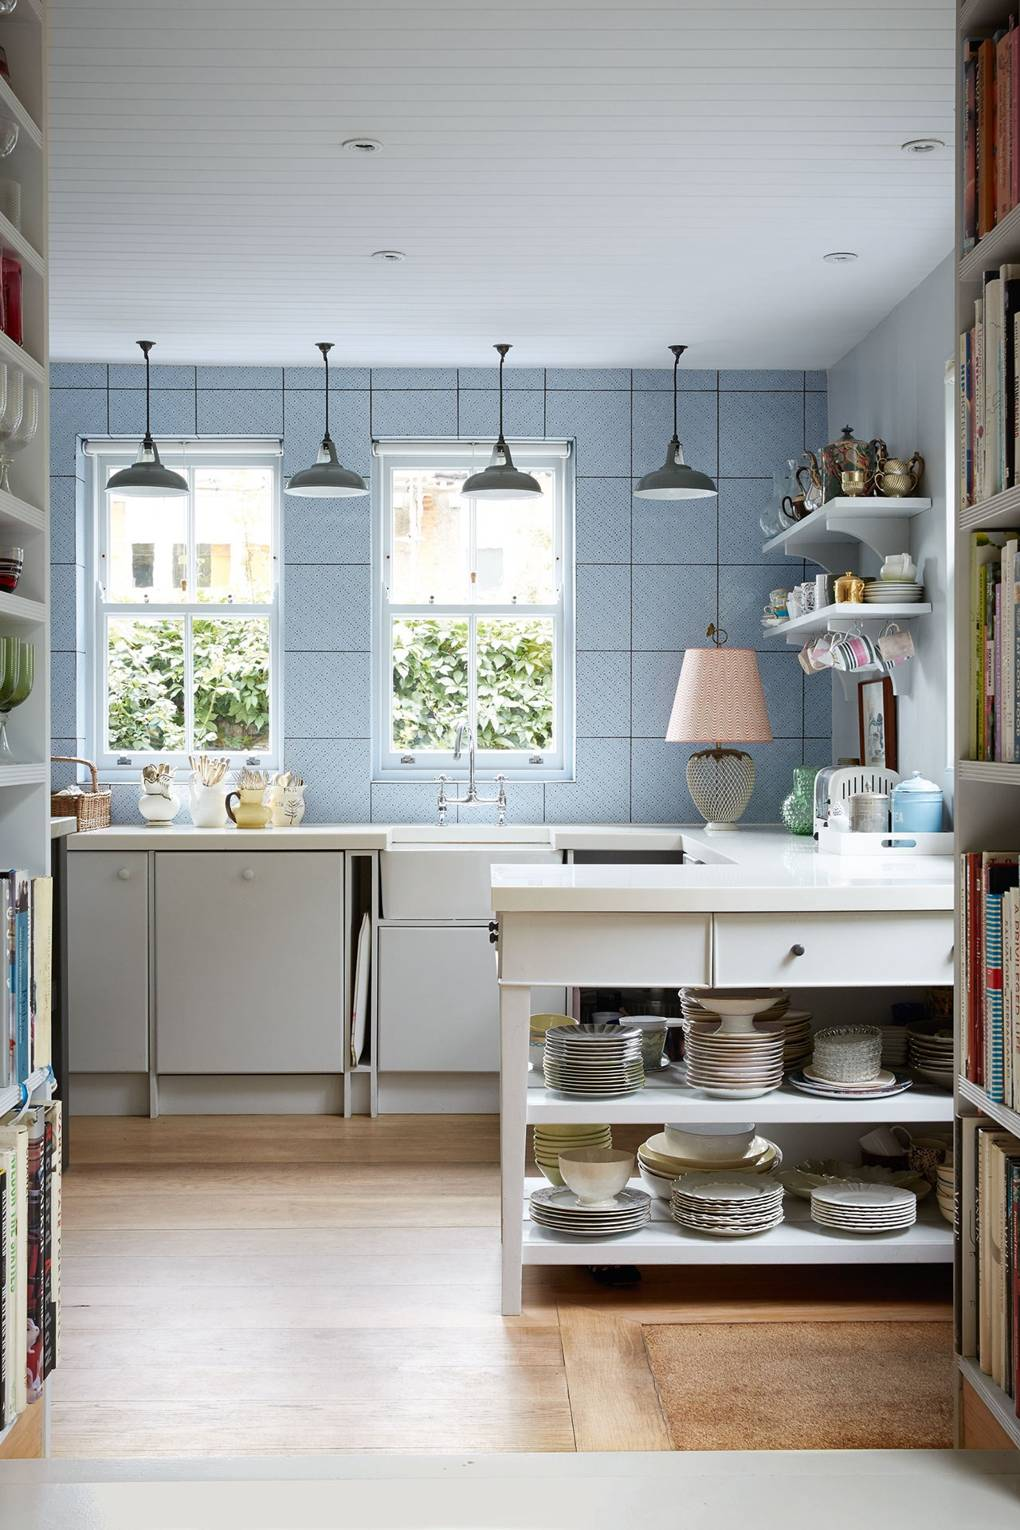 Kitchen worktops - ideas, designs and inspiration   House & Garden on victorian home bedrooms, victorian era kitchen decor, shabby chic kitchen ideas, row house kitchen ideas, victorian craft ideas, victorian home halloween, hunting lodge kitchen ideas, log house kitchen ideas, victorian home art, victorian home furniture, victorian home color, victorian home fireplace, victorian home bathrooms, victorian home modern kitchen, victorian design ideas, victorian home doors, victorian home accents, victorian bathroom ideas, victorian home kitchen flooring, victorian home before and after,